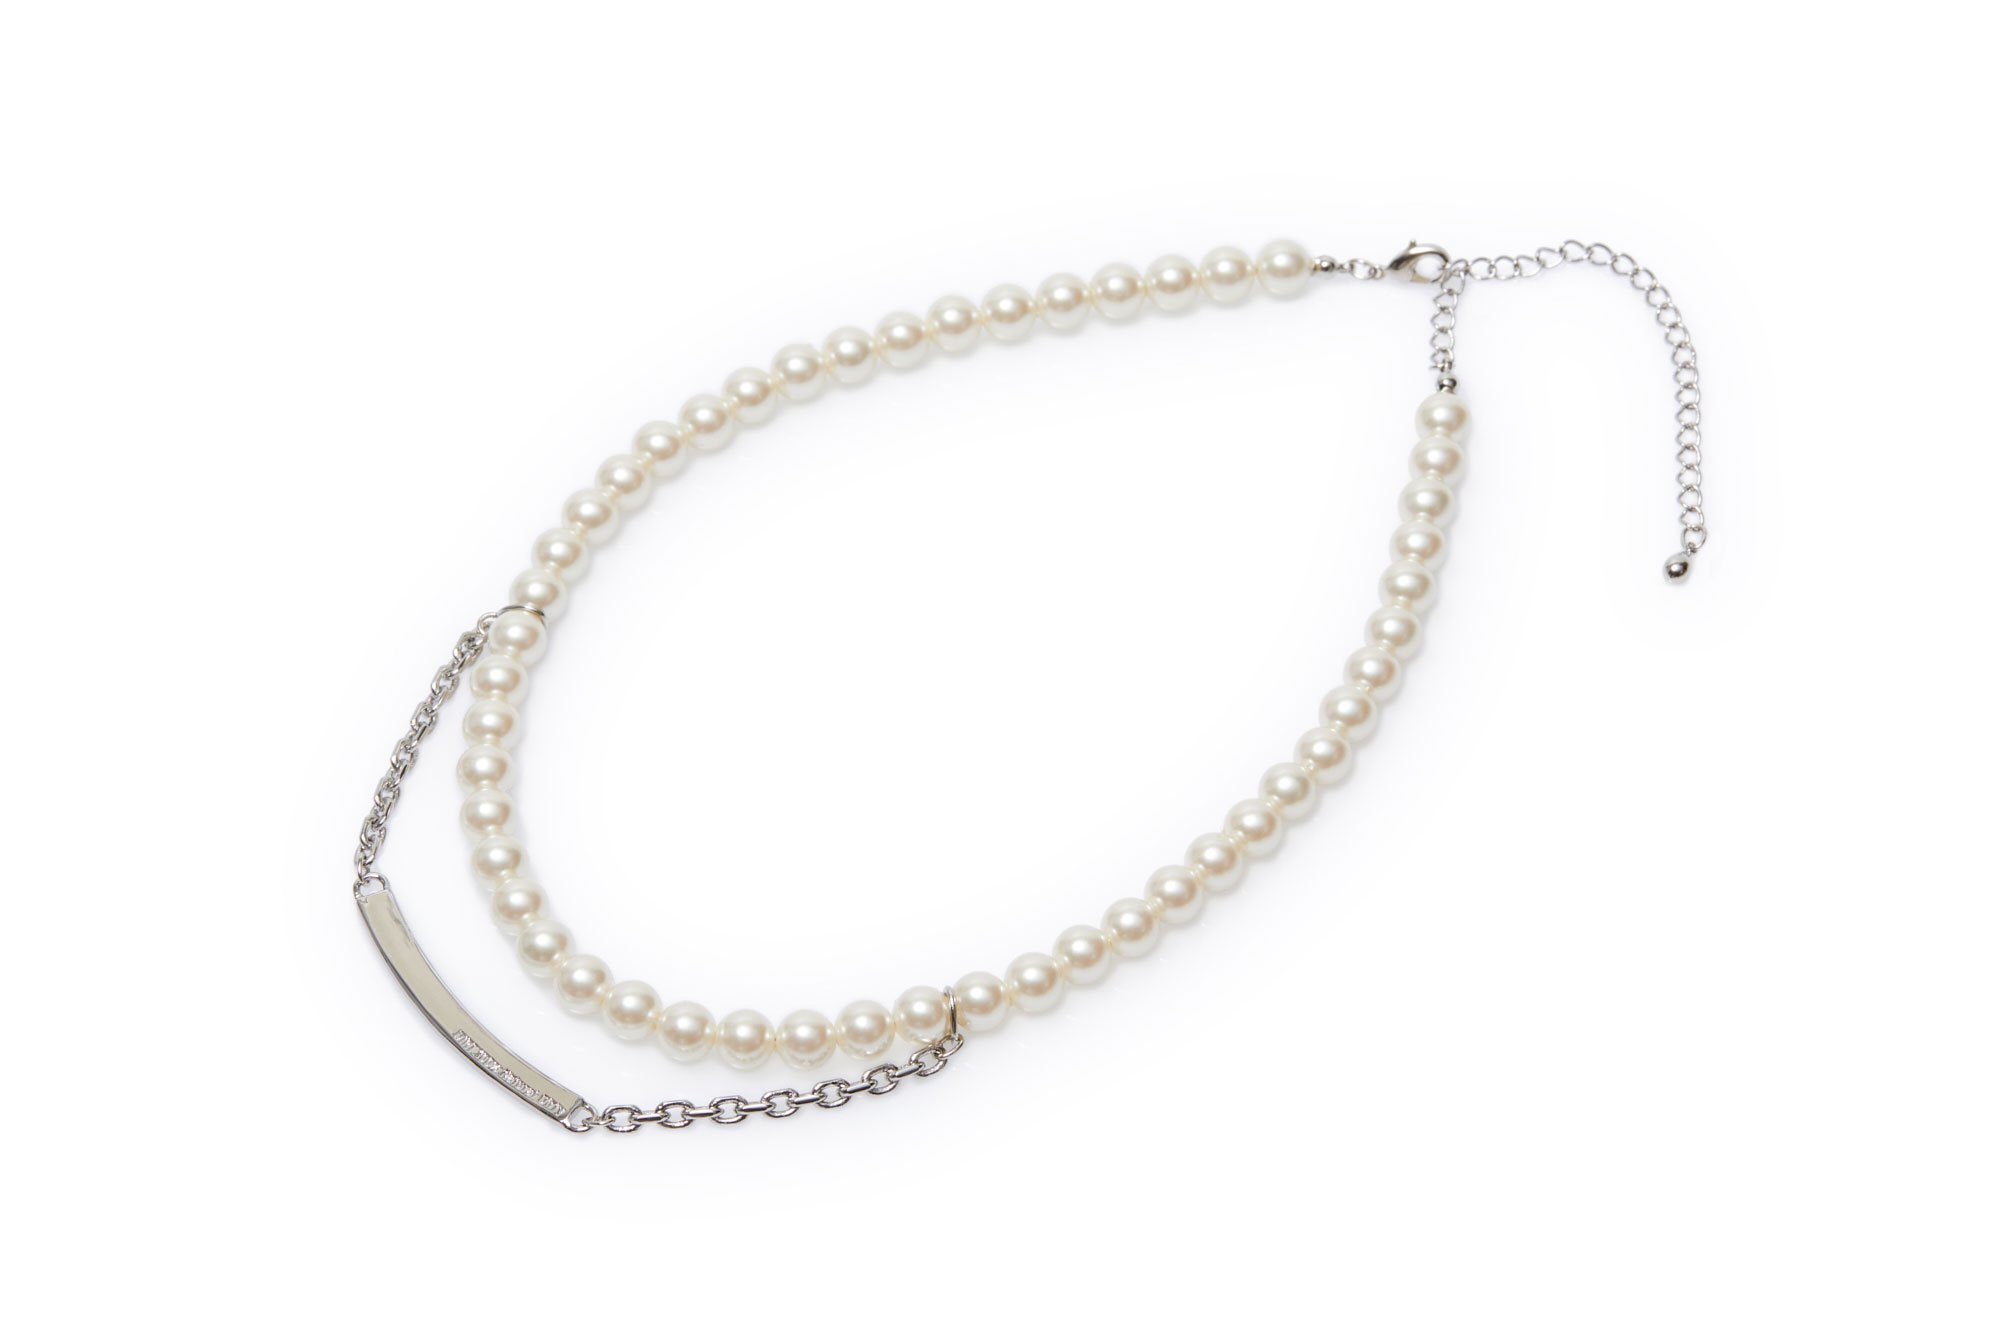 <img class='new_mark_img1' src='https://img.shop-pro.jp/img/new/icons14.gif' style='border:none;display:inline;margin:0px;padding:0px;width:auto;' />2020AW collection Pearl Necklace SI